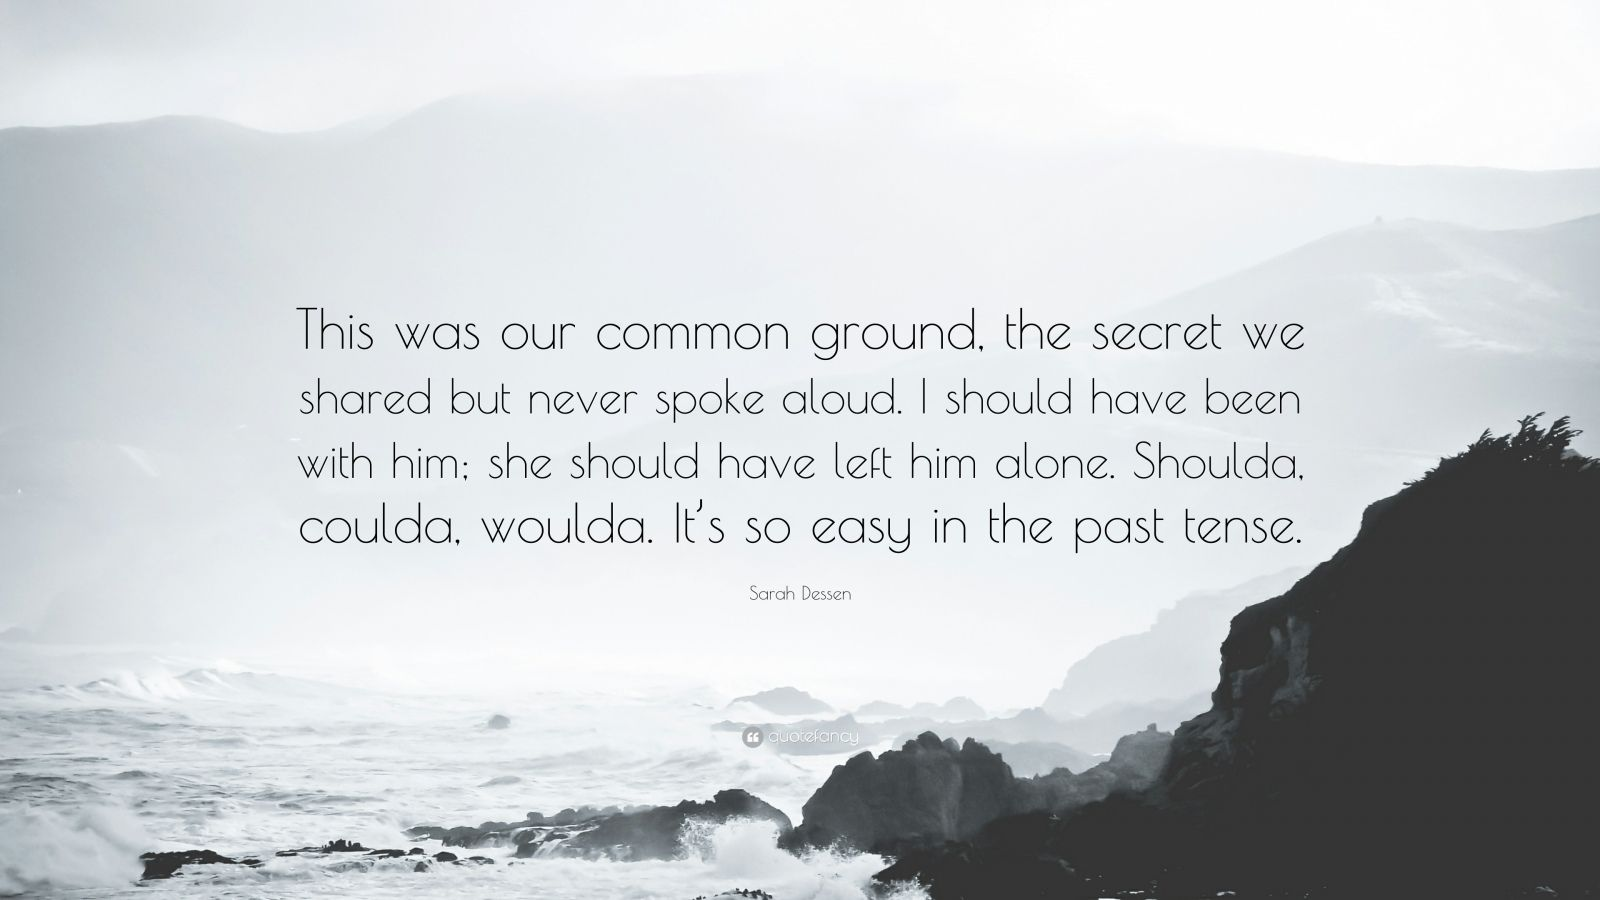 """Sarah Dessen Quote: """"This was our common ground, the secret we shared but never spoke aloud. I should have been with him; she should have left him alone. Shoulda, coulda, woulda. It's so easy in the past tense."""""""